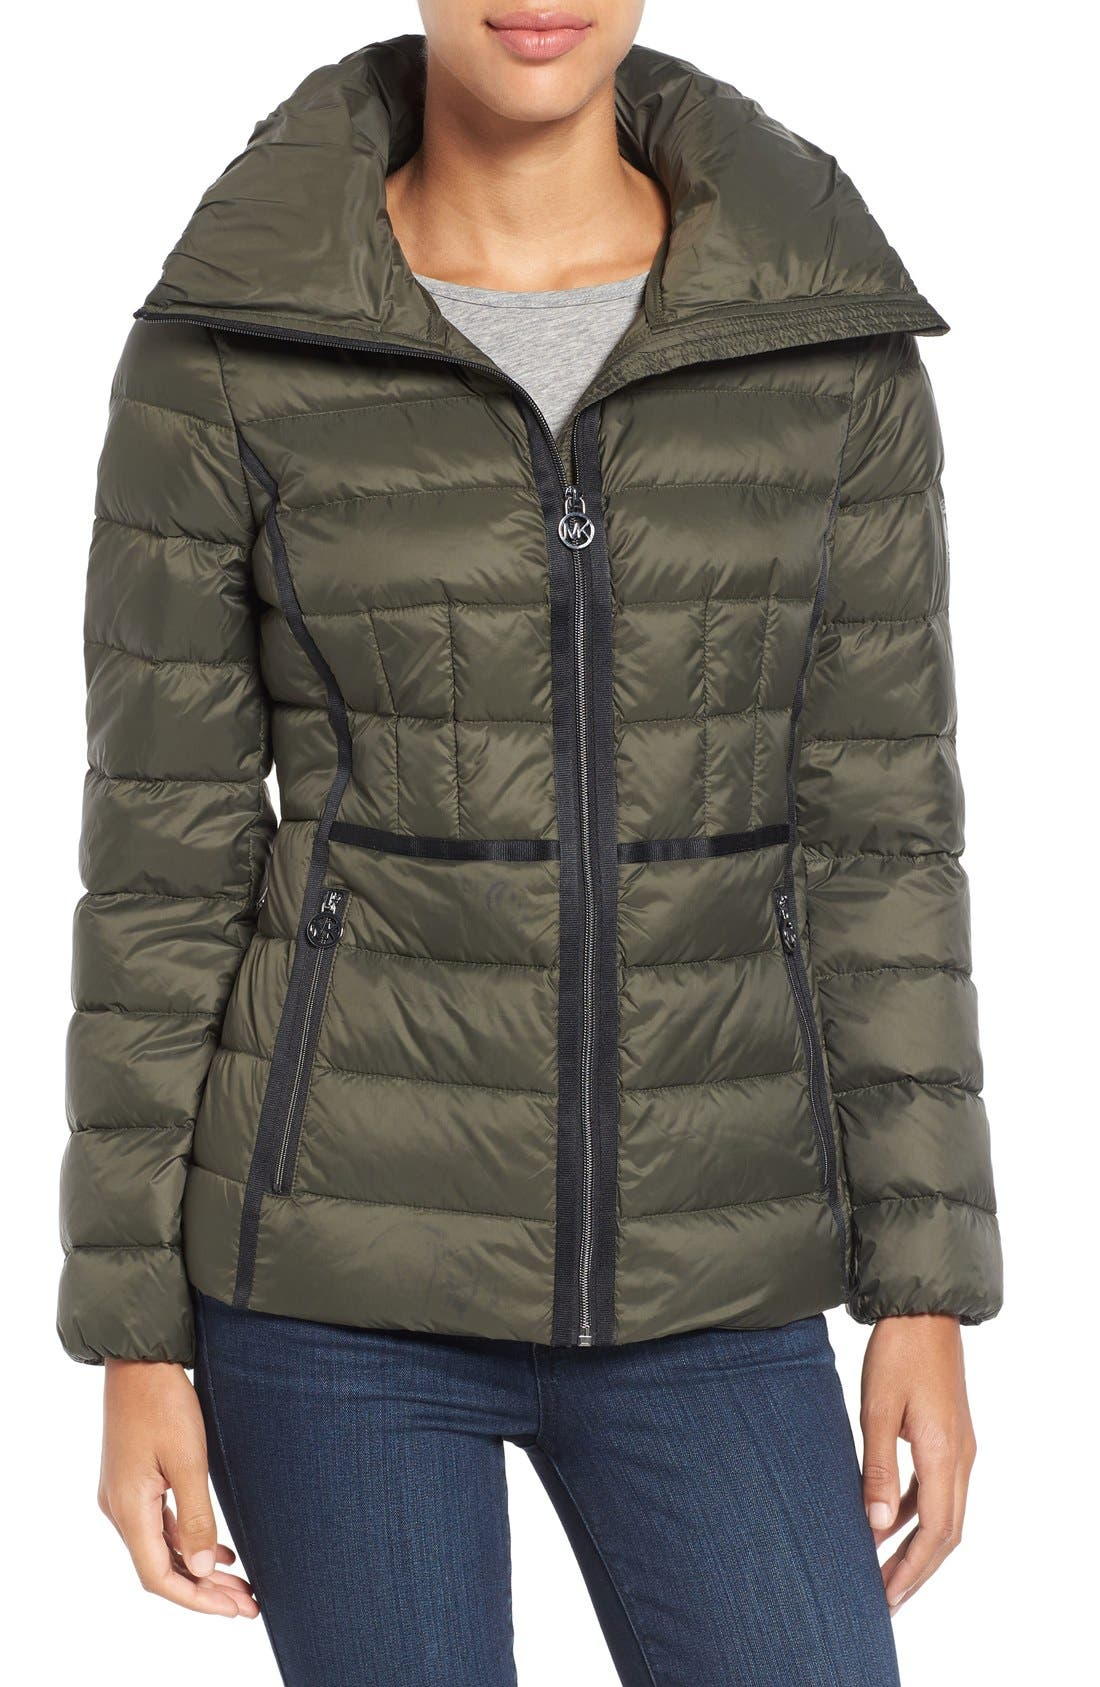 Alternate Image 1 Selected - MICHAEL Michael Kors Packable Down Zip Front Jacket (Regular & Petite)